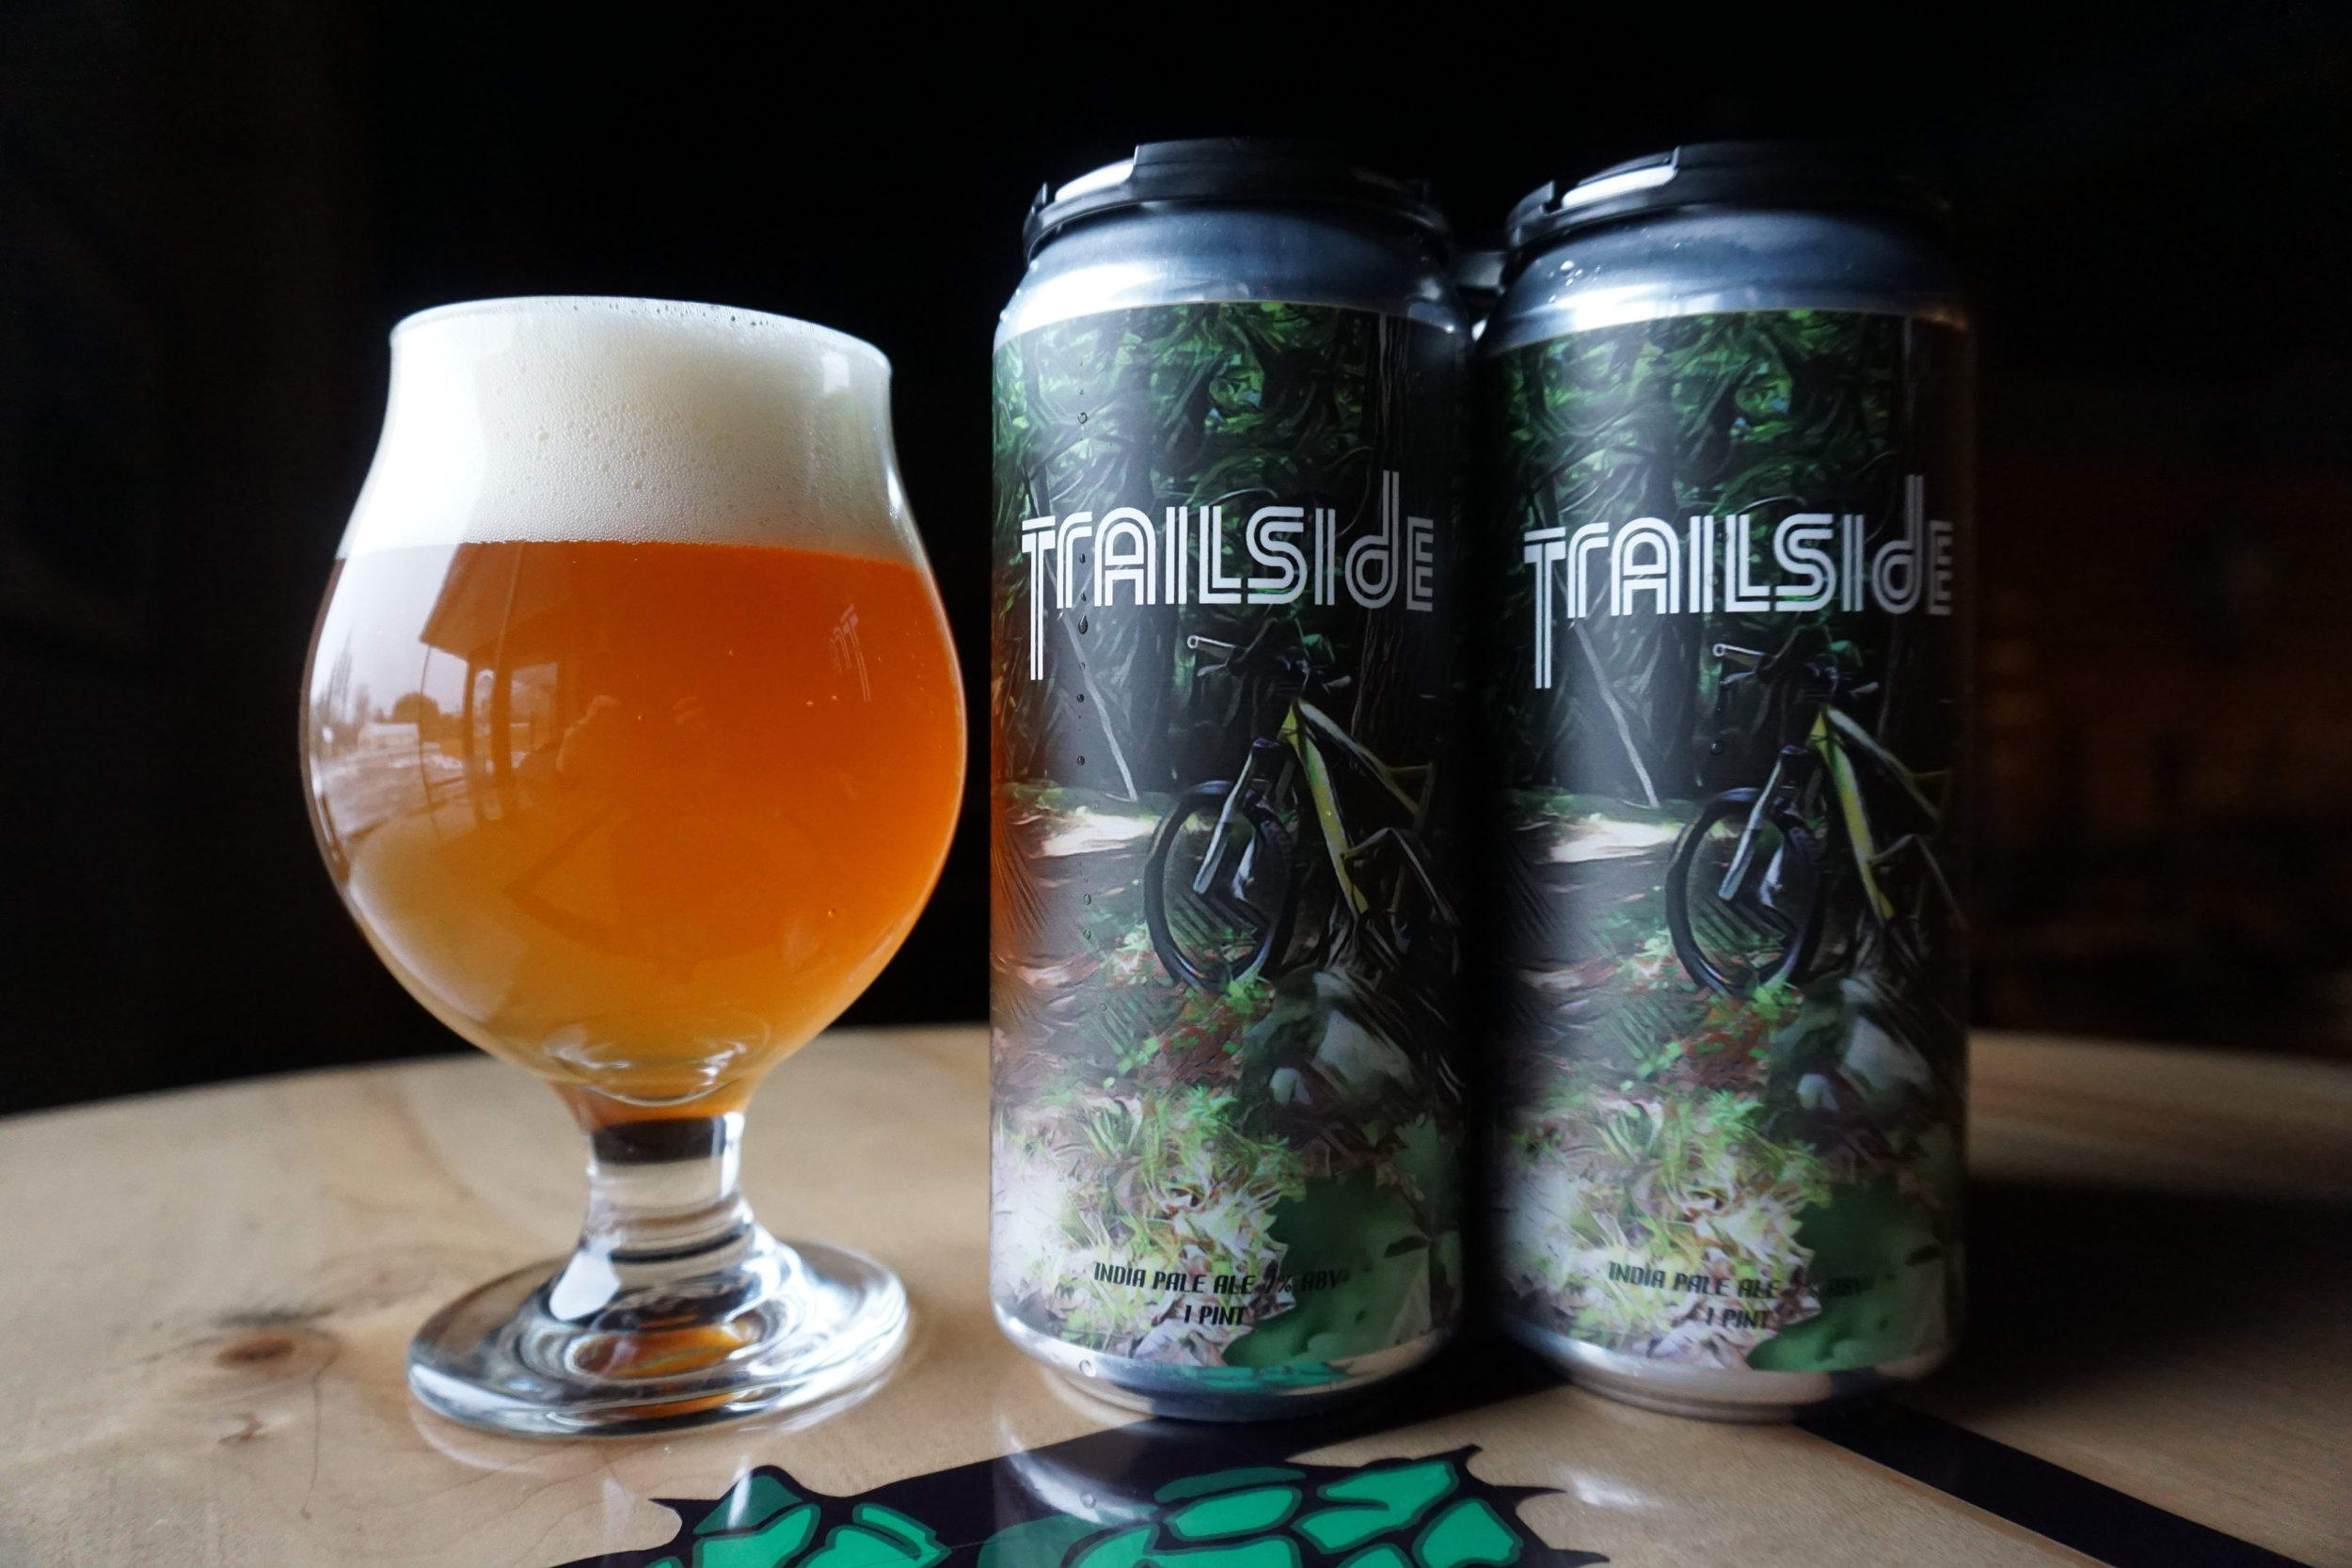 Trailside IPA, 7% ABV - A throwback recipe from the days of home-brewing. TRAILSIDE is a golden IPA hopped with simcoe, cascade and centennial with a big citra dry hop. Notes of citrus and pine with a refreshing dry finish